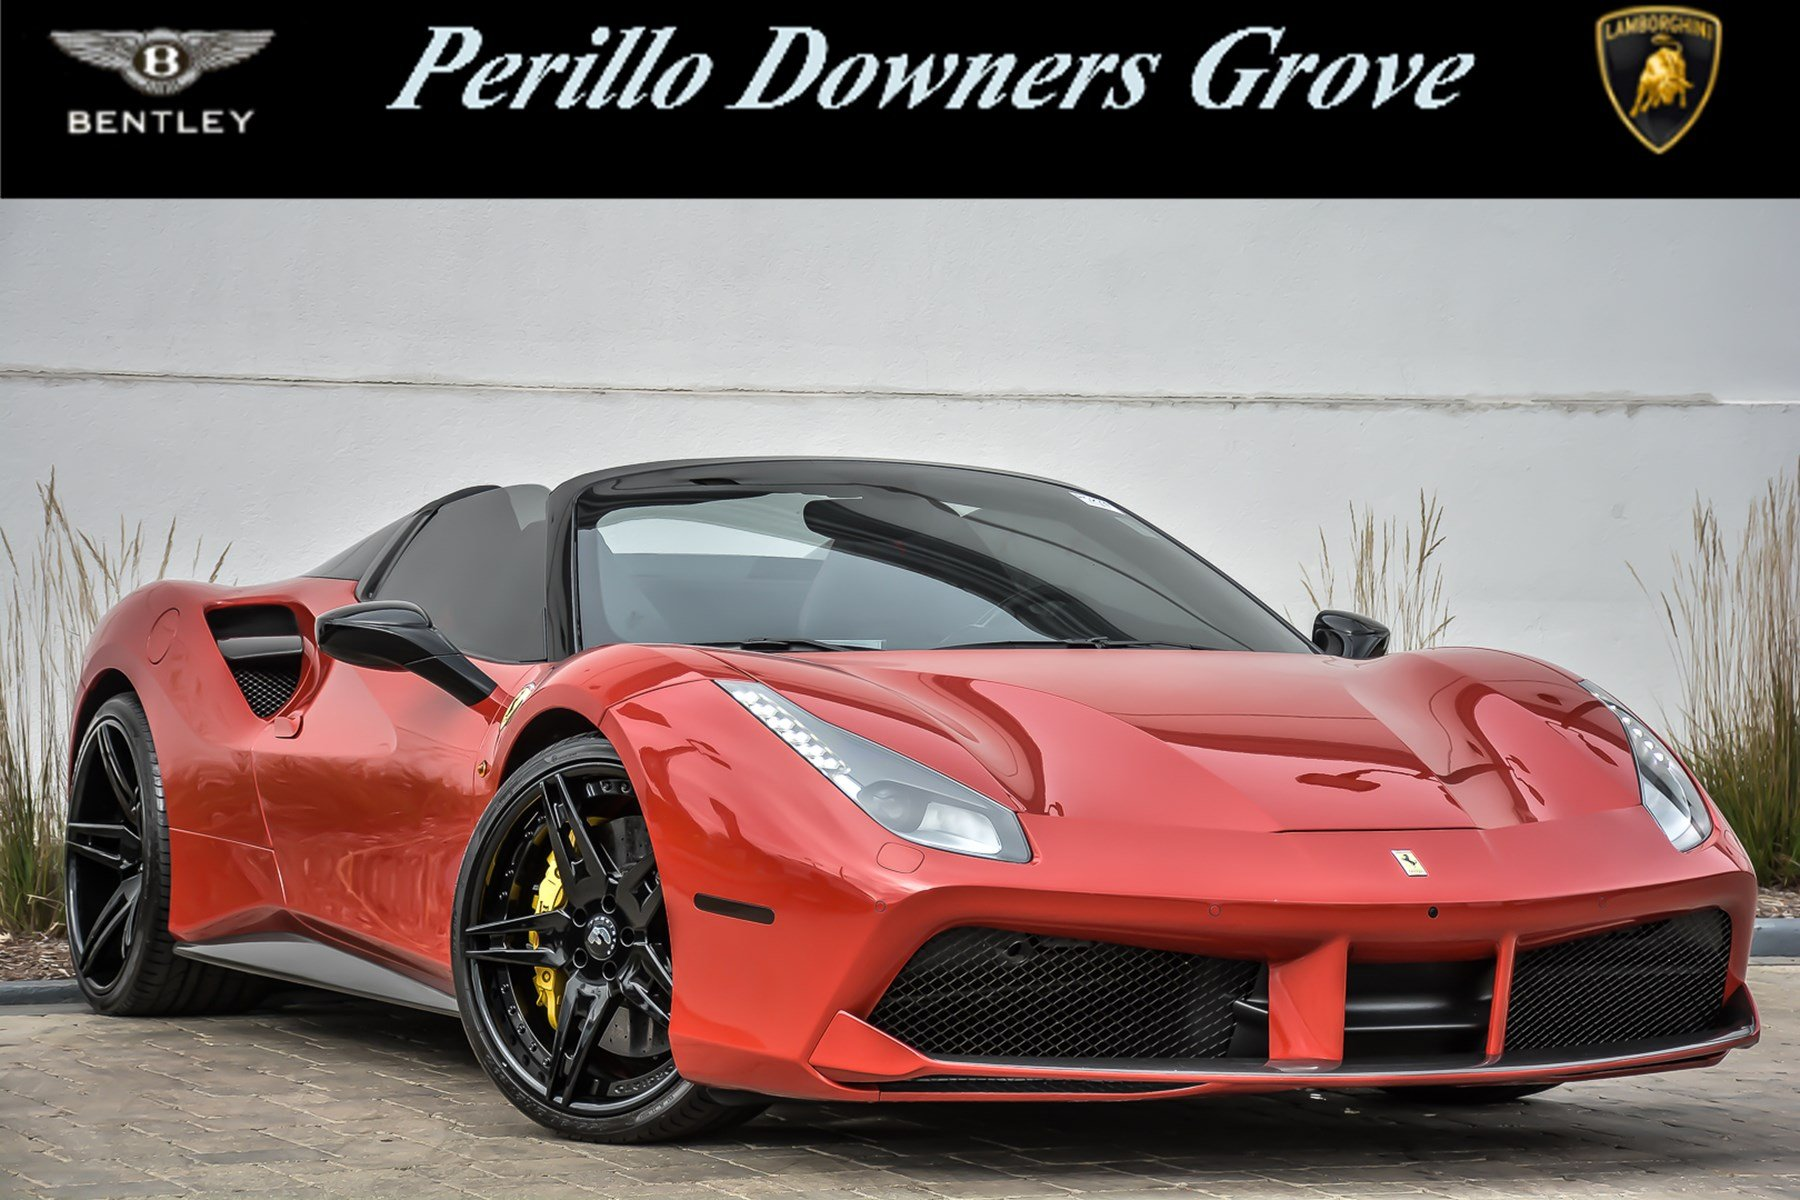 pre-owned 2017 ferrari 488 spider convertible in downers grove